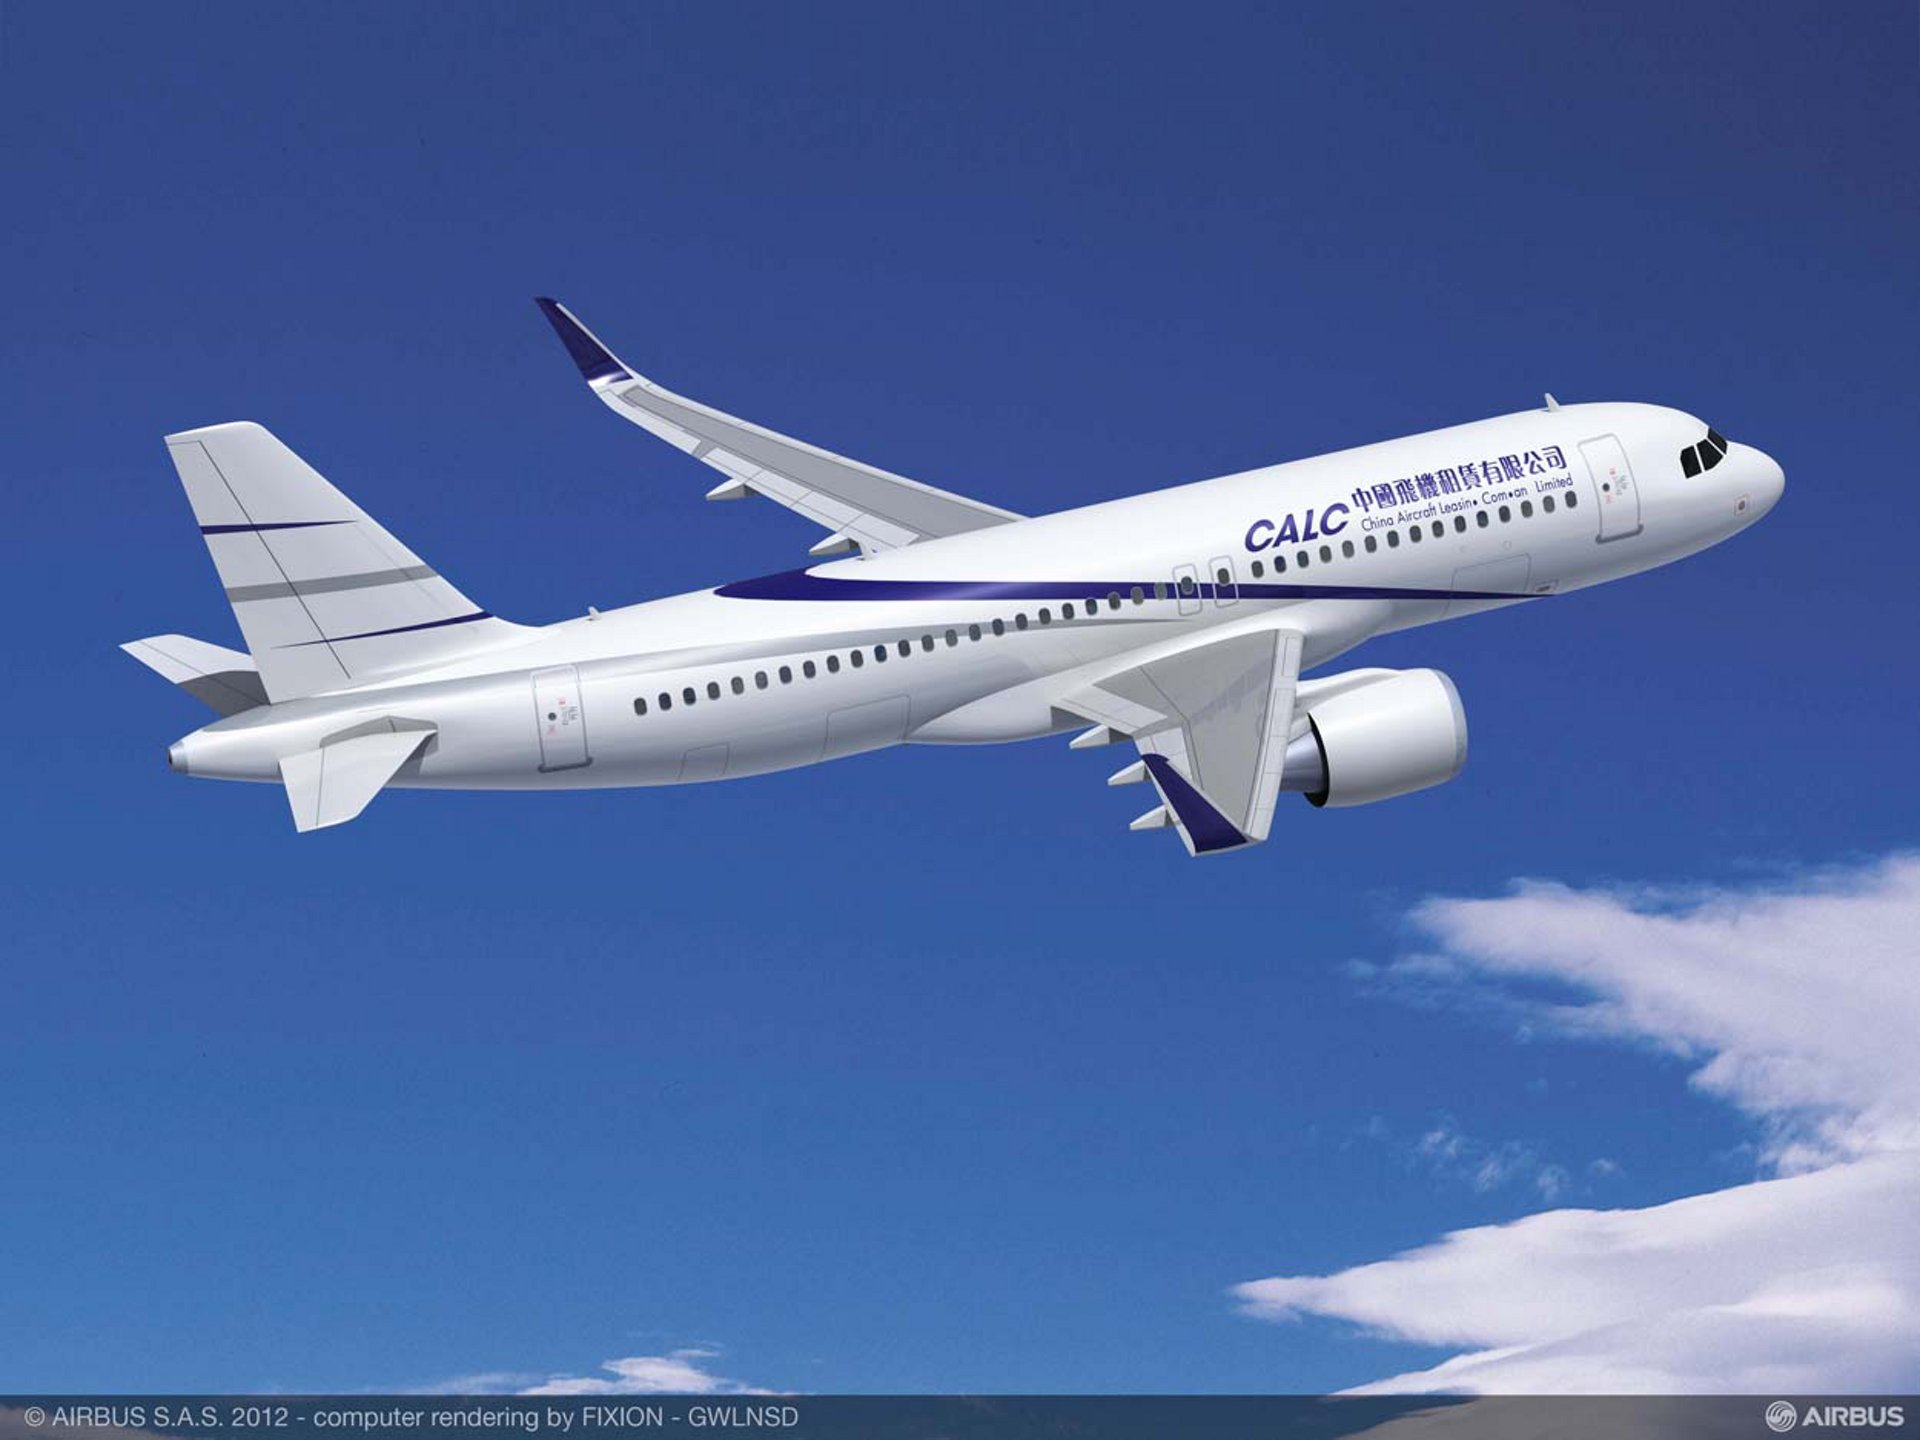 China Aircraft Leasing Company's A320neo